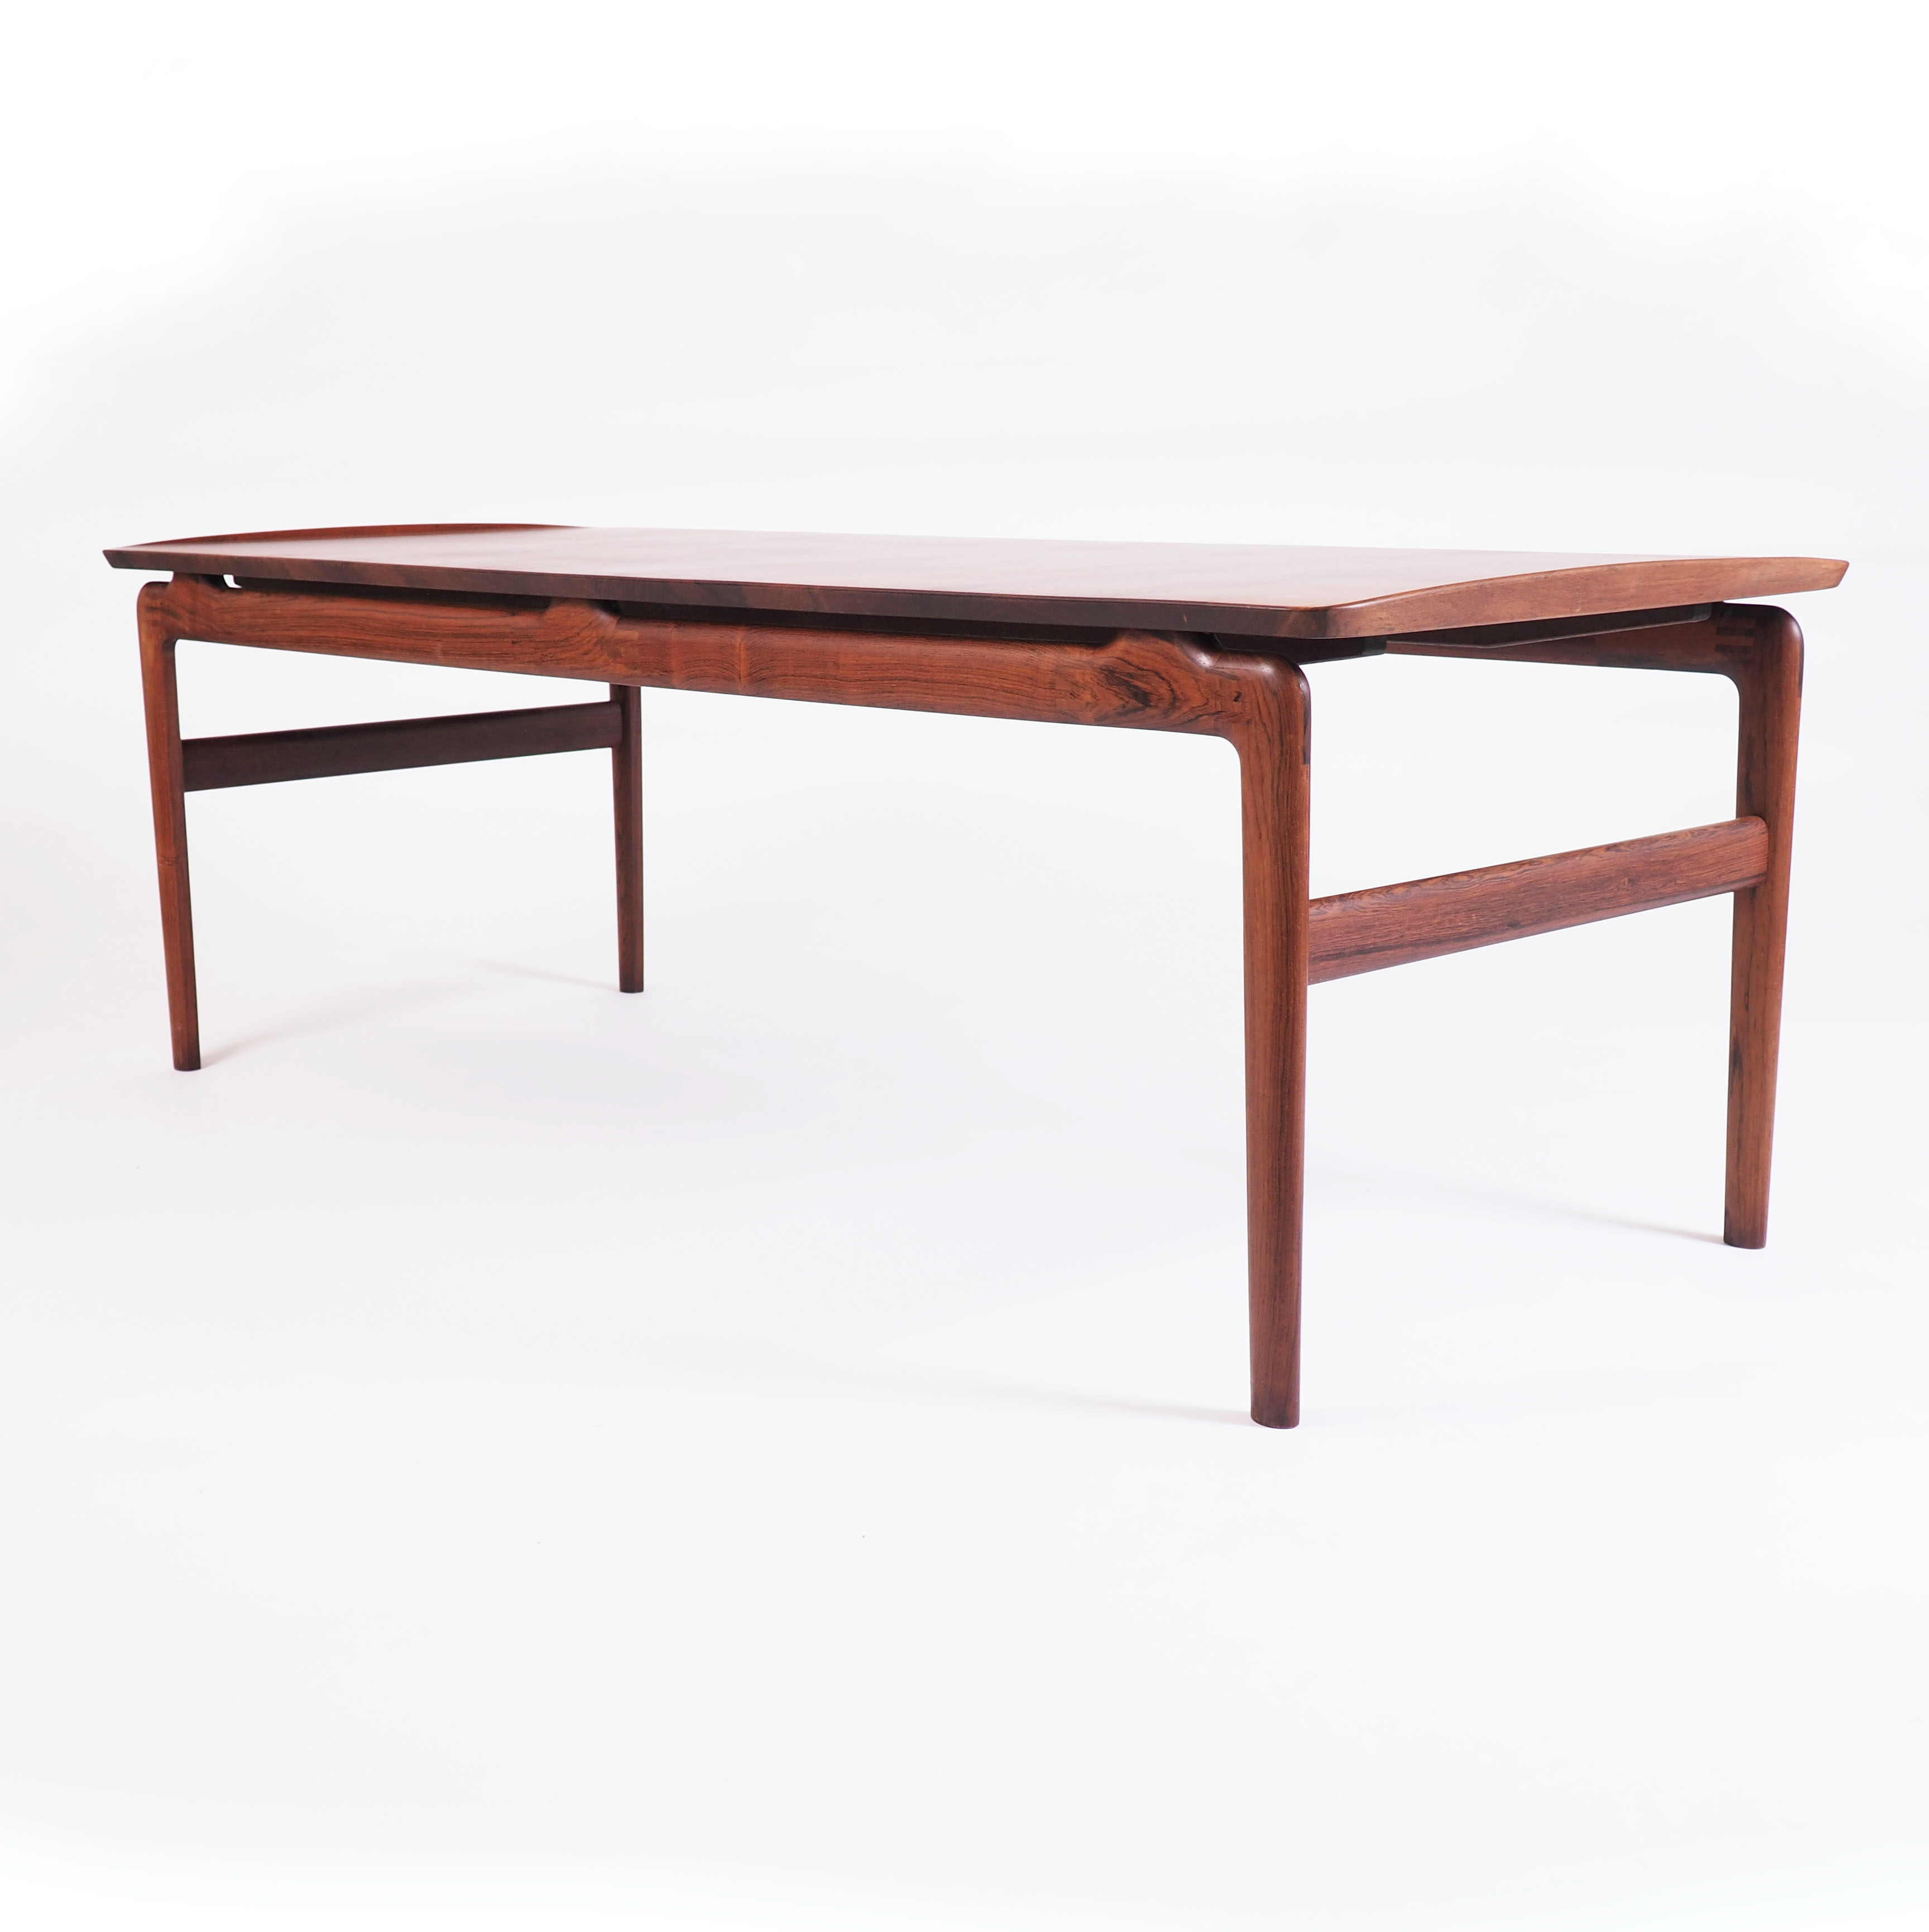 Table in Solid Rosewood by Peter Hvidt and Orla Mølgaard-Nielsen, Denmark